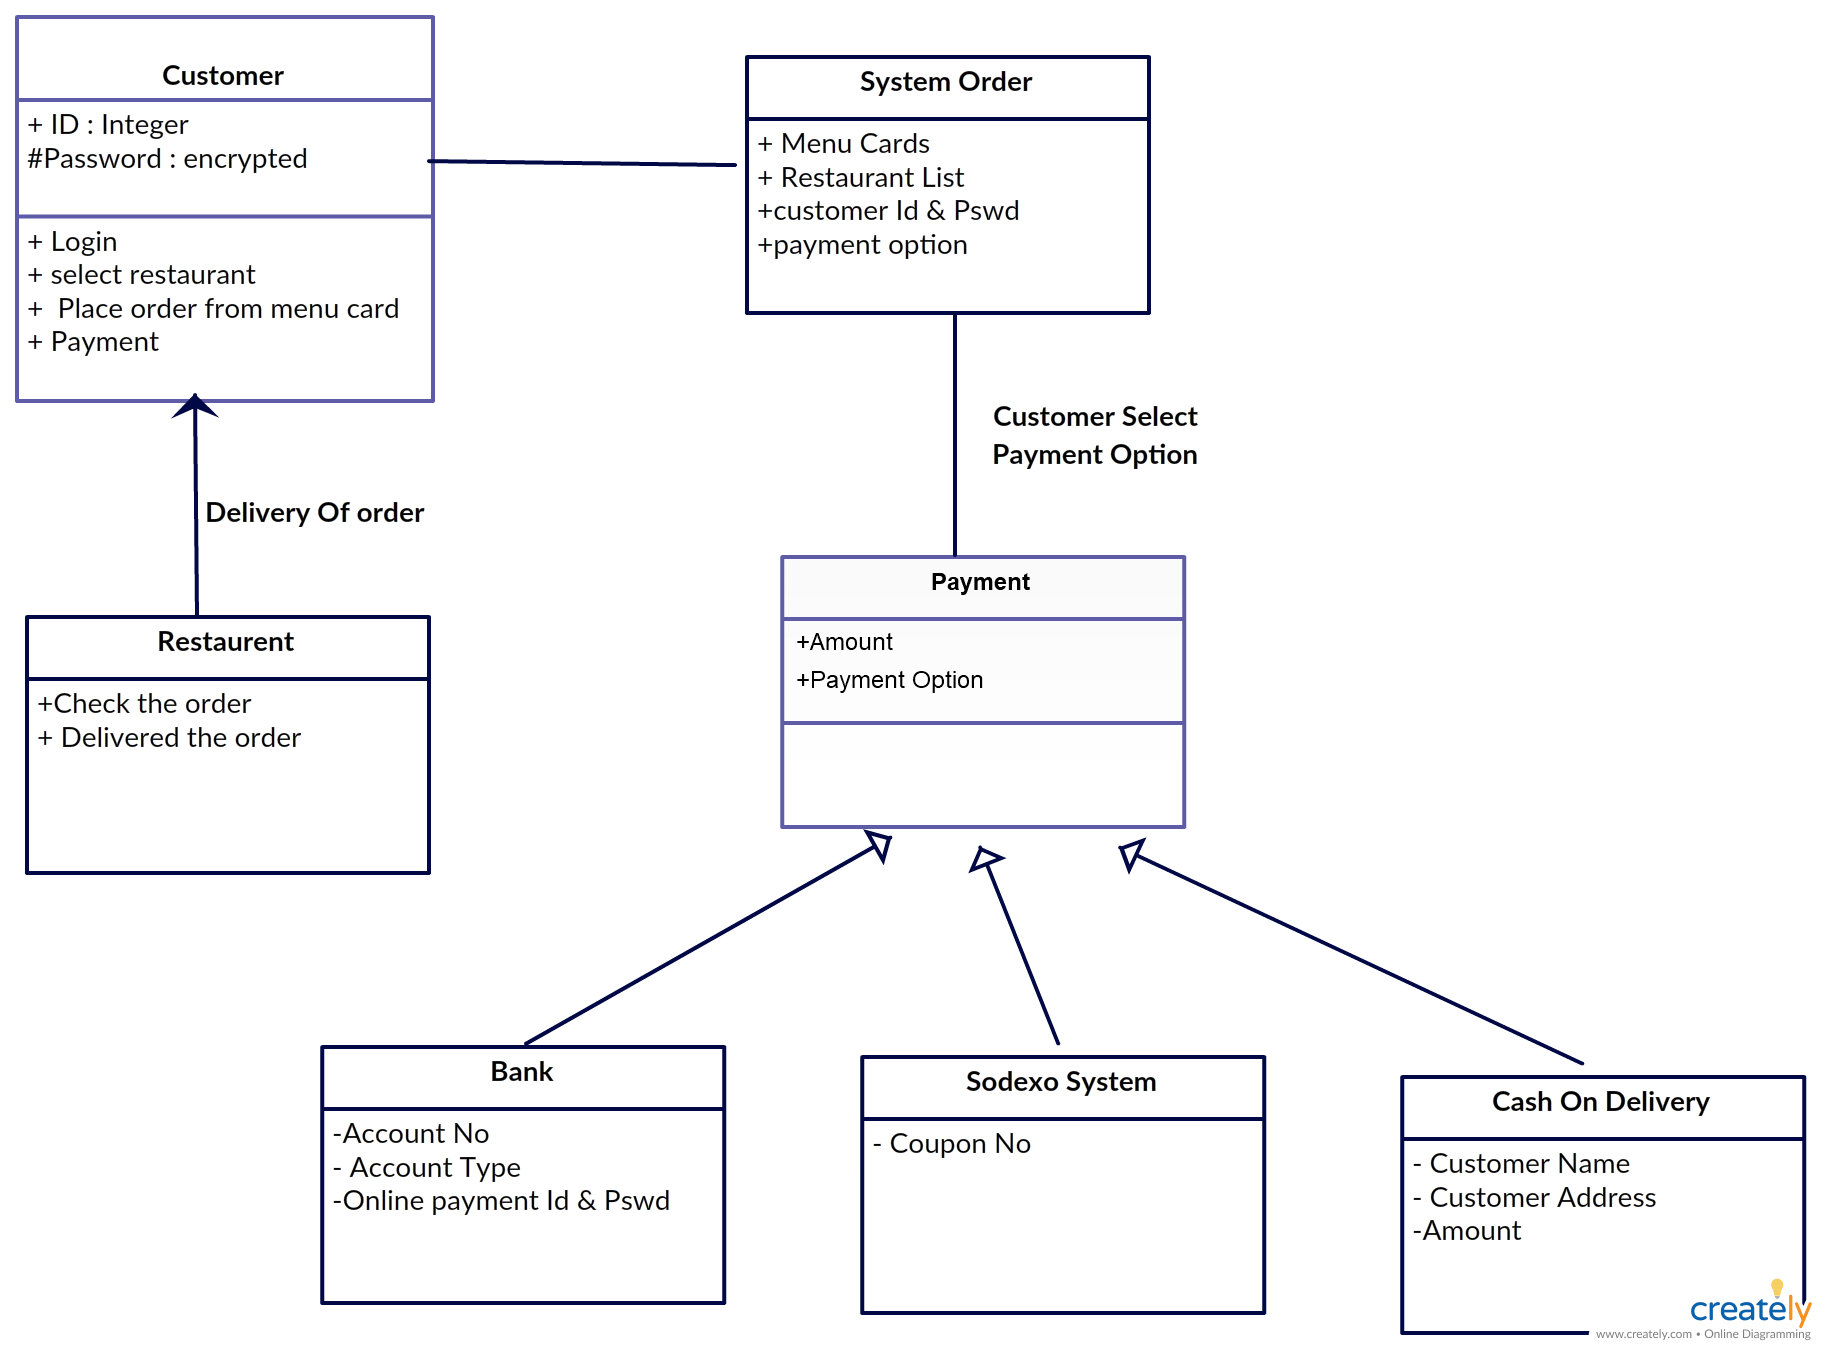 medium resolution of uml class diagram for online food ordering system you can modify this according to the system structure of your end by simply clicking on the image